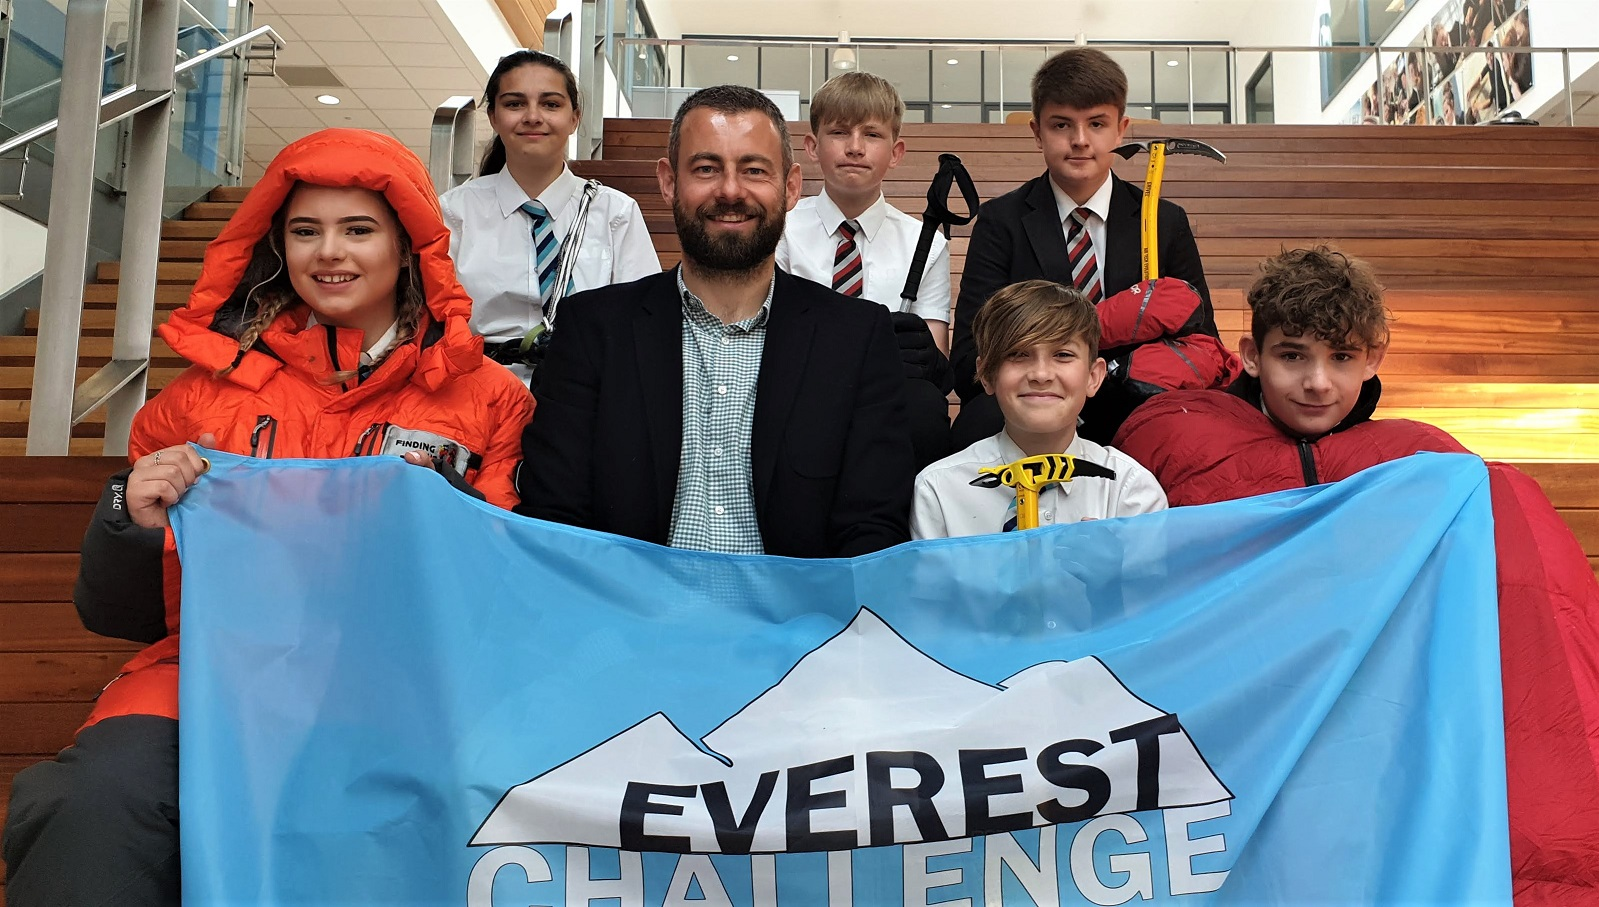 Everest climber Ricky Munday (centre) shared his expertise with Shirebrook Academy students (front row from left) Ellena Keigher, 15, Josh Towers, 14, and Josh Hutton, 14, and (back row) Reanna Davies, 15, Callum Nussey, 14, and Charlie Jones, 13. Penguin PR: public relations, media and communications